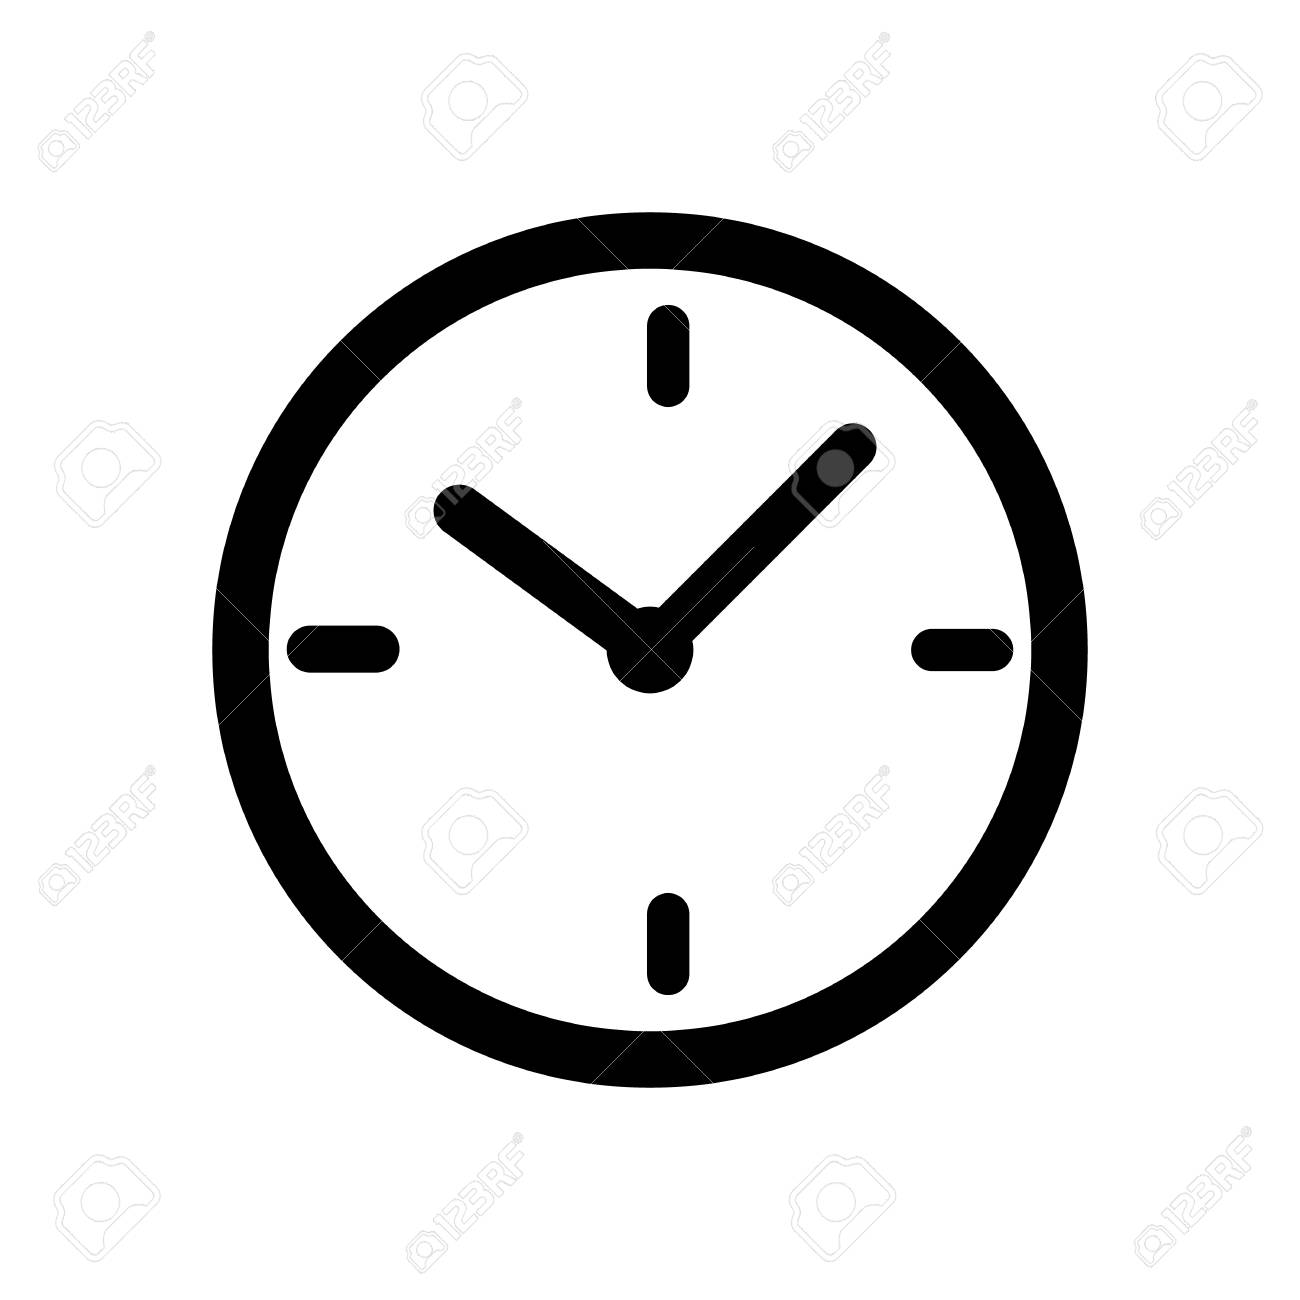 Black time clock icon isolated on white background.